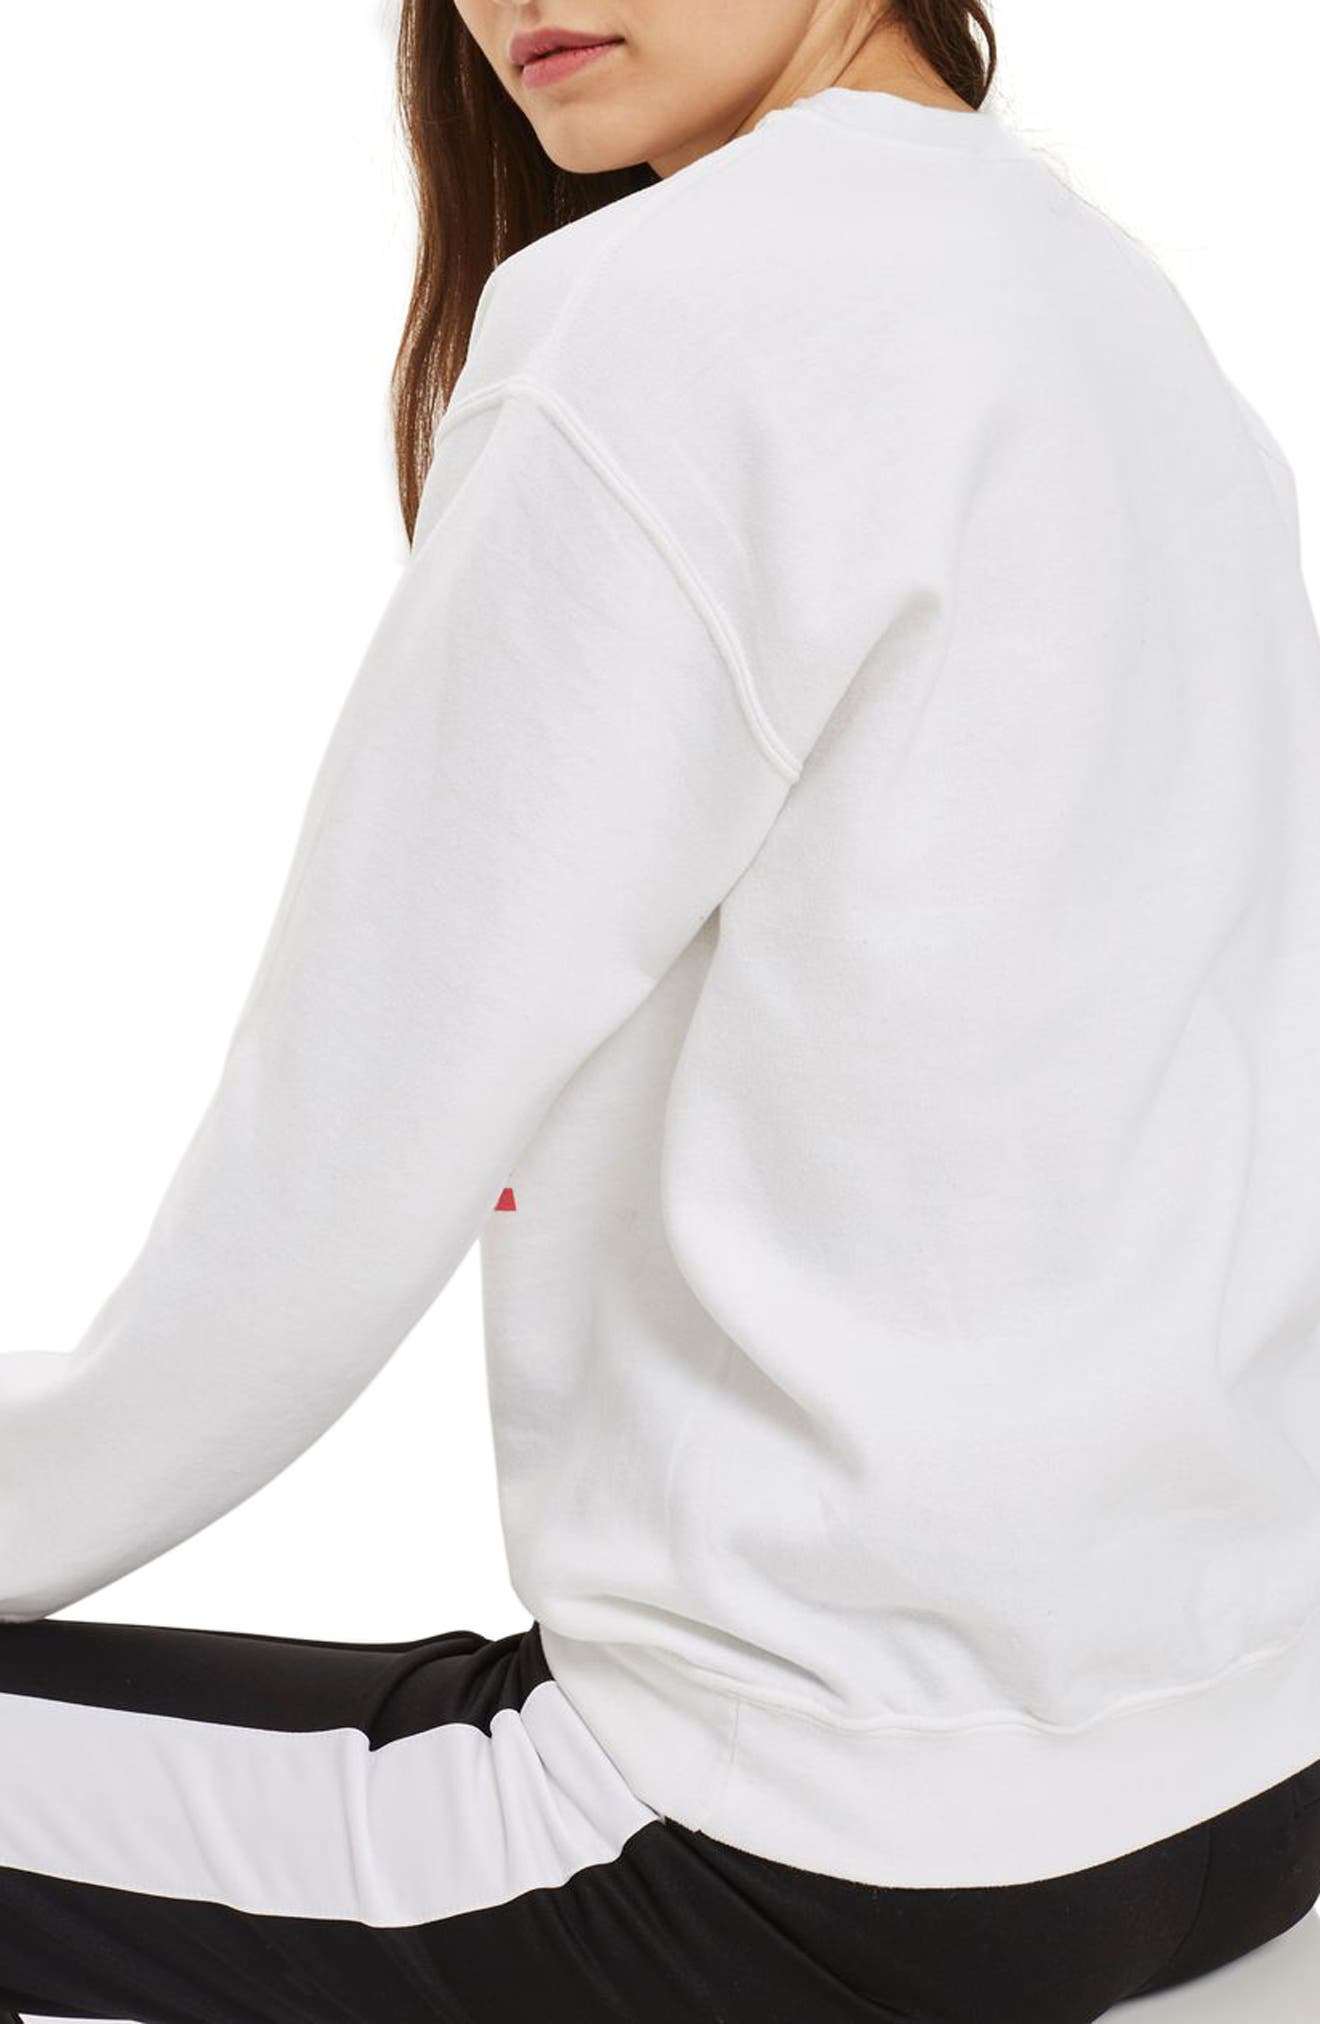 Embroidered Amore Sweatshirt,                             Alternate thumbnail 2, color,                             100